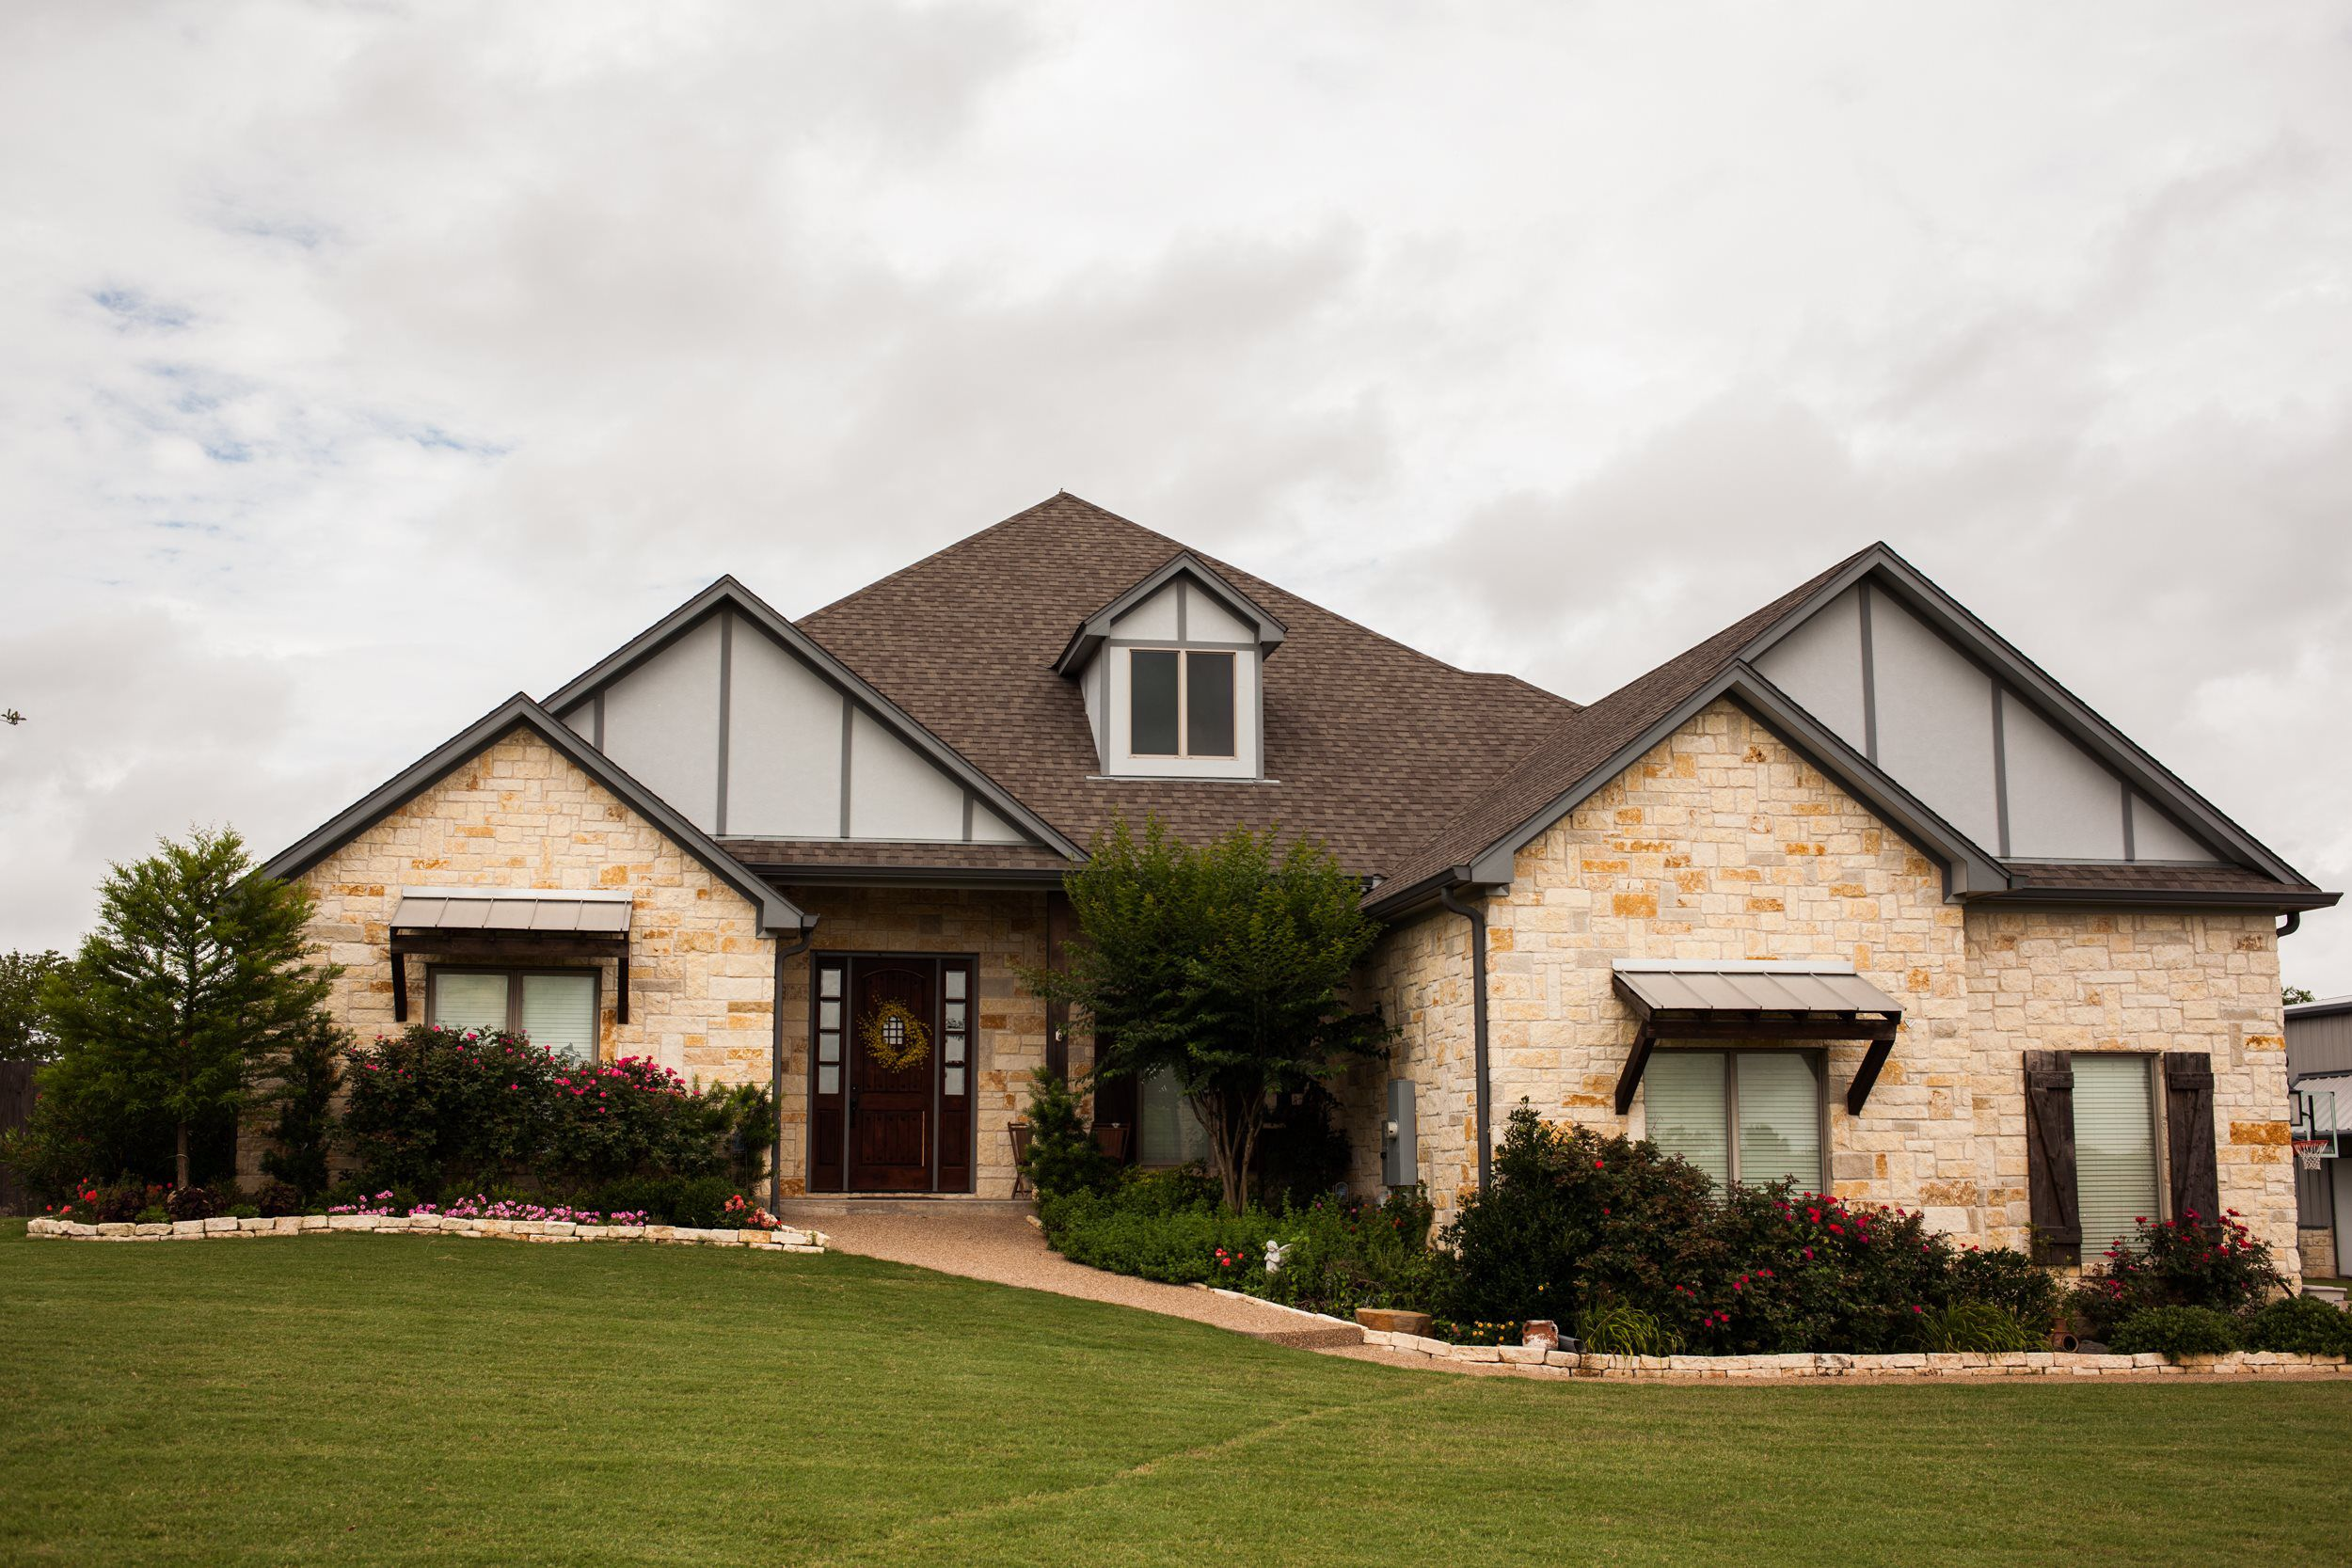 Echterling Homes Building New Homes For Over 50 Years Waco, Temple ...